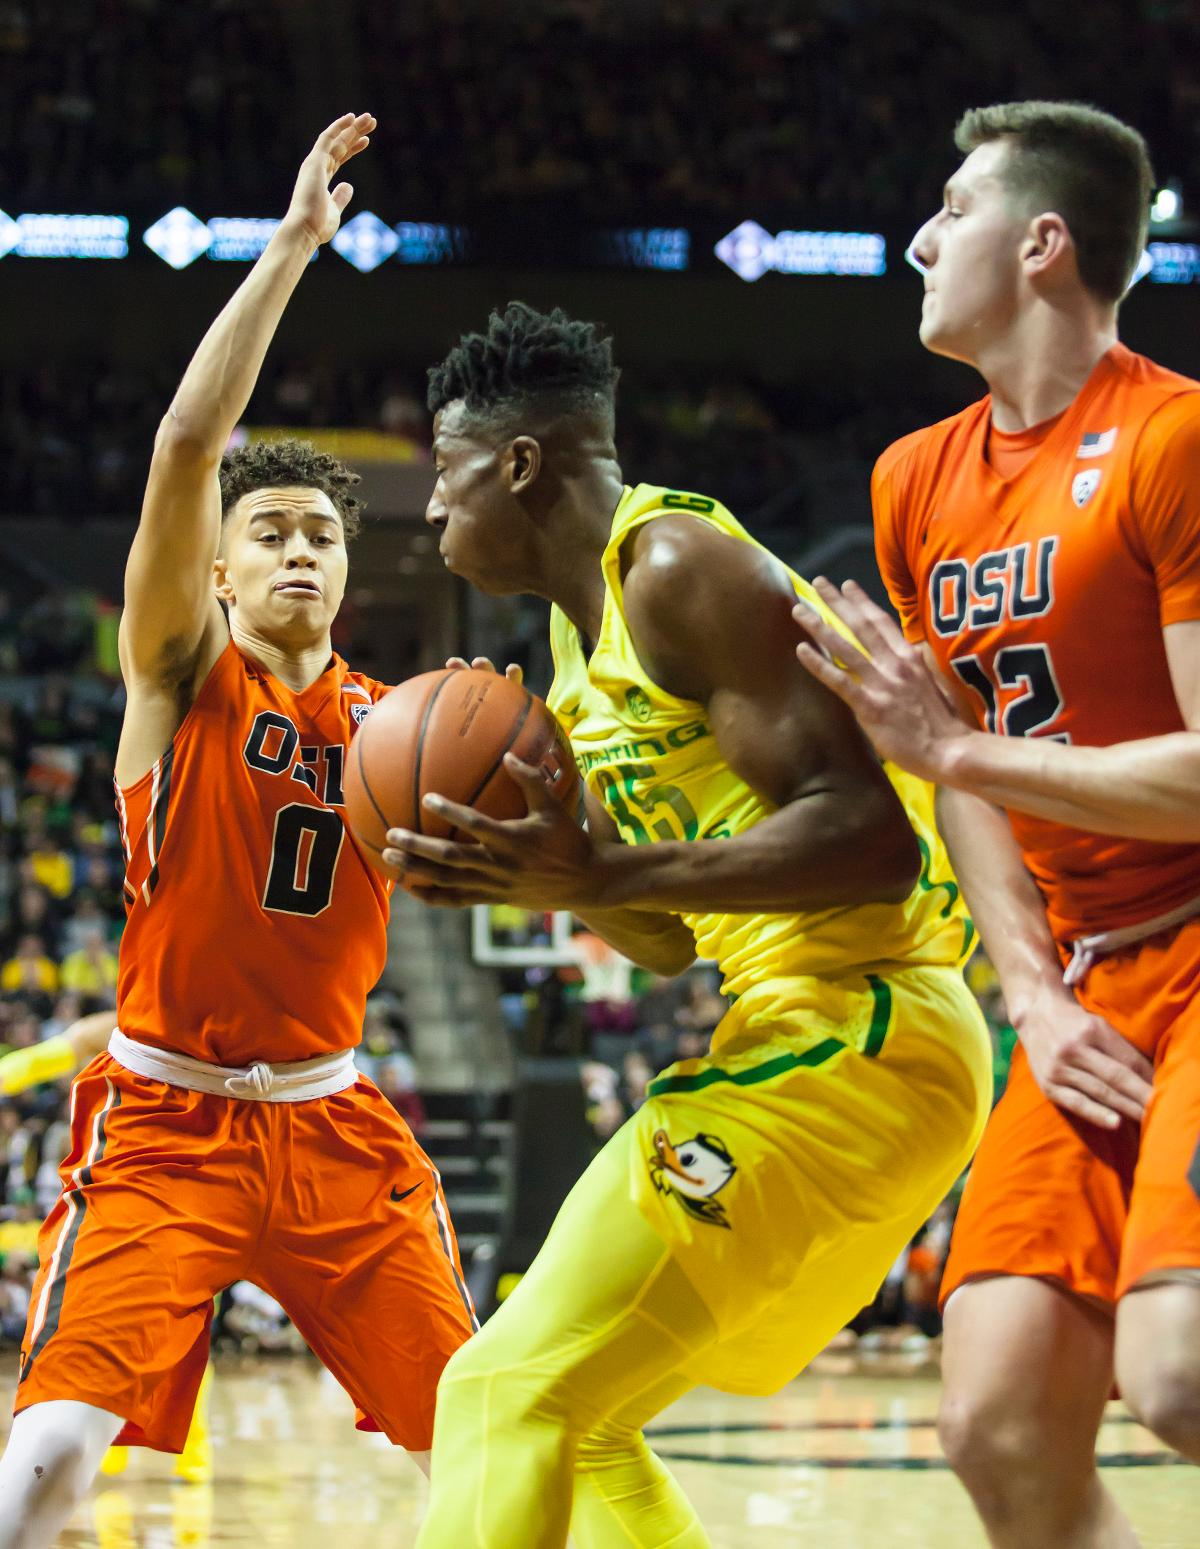 Oregon forward Kavell Bigby-Williams (#35) protects the ball from Oregon State's Jaquori McGlaughlin (#0). The Oregon Ducks defeated the Oregon State Beavers 85 to 43. Photo by Ben Lonergan, Oregon News Lab